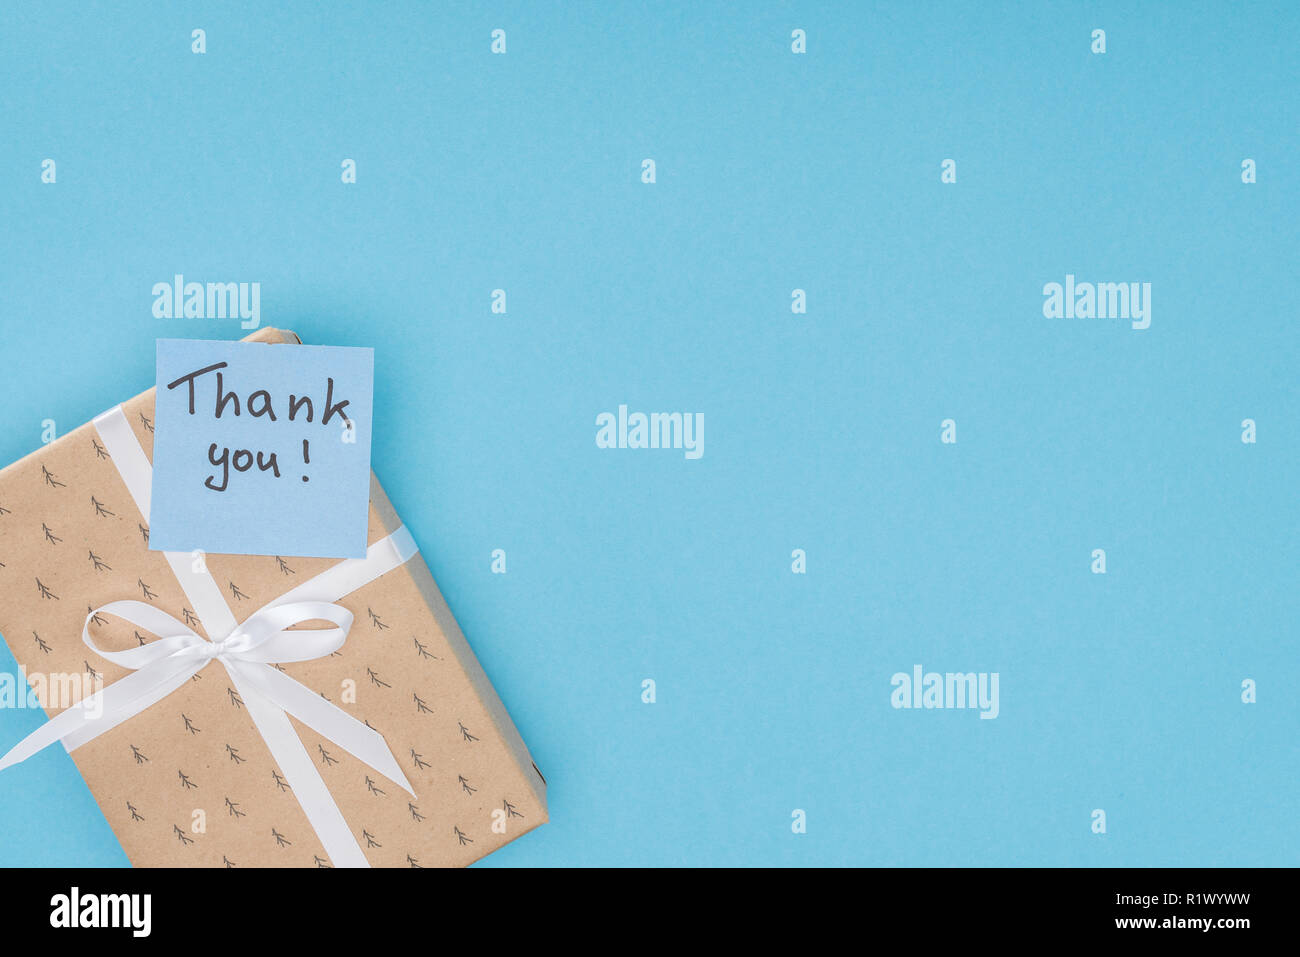 sticky note with thank you lettering on gift box isolated on blue background - Stock Image